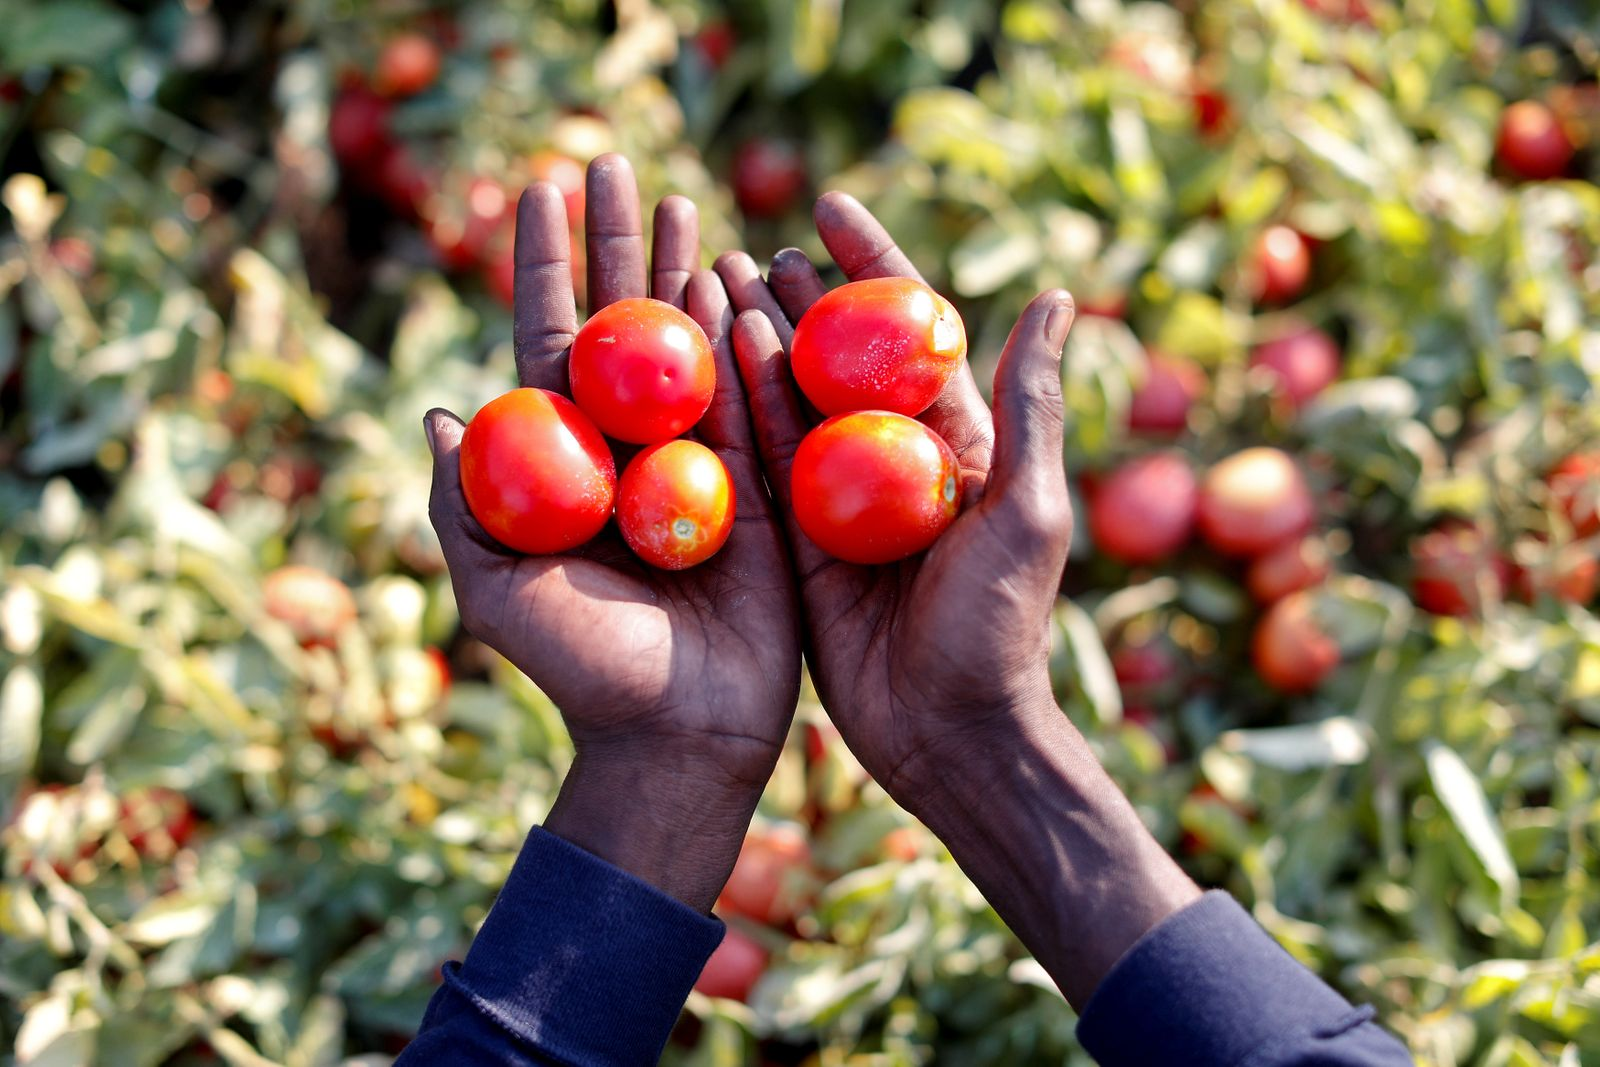 Sutay Darboe, 42, from Senegal holds tomatoes in a field of tomato plants, near Foggia